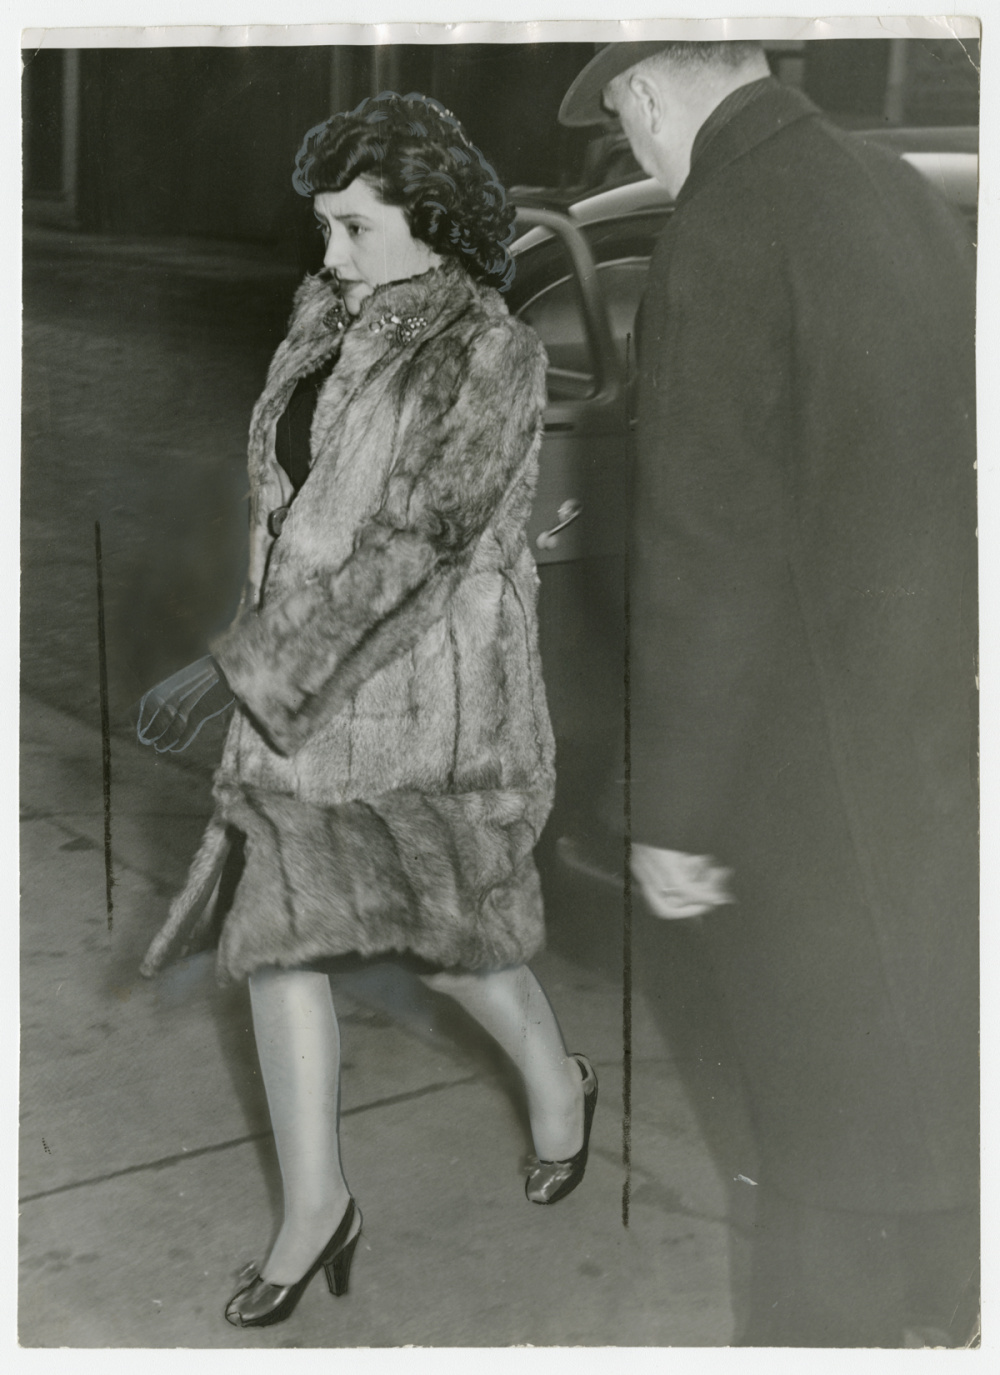 Unidentified Photographer, Looking stouter after months of close confinement, Mrs. Evelyn Dick leaves Hamilton jail on her way to the court house, 1947. Gelatin silver print, 9.5 x 7